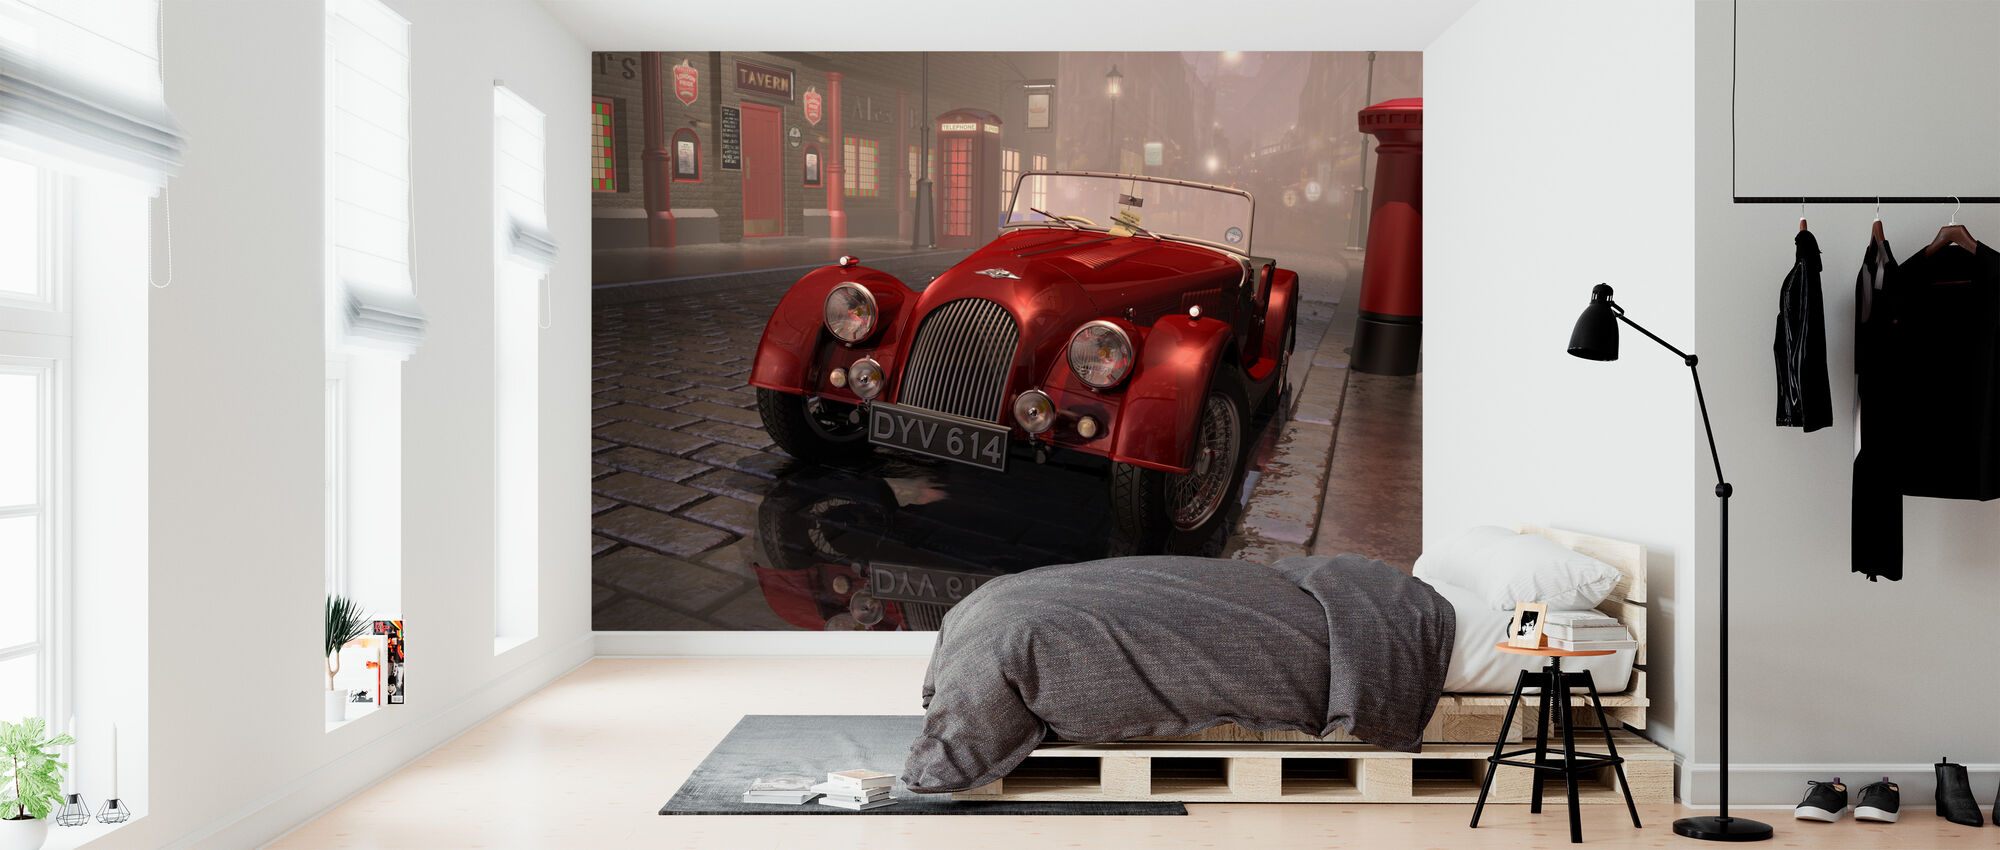 British Sports Car in London - Wallpaper - Bedroom